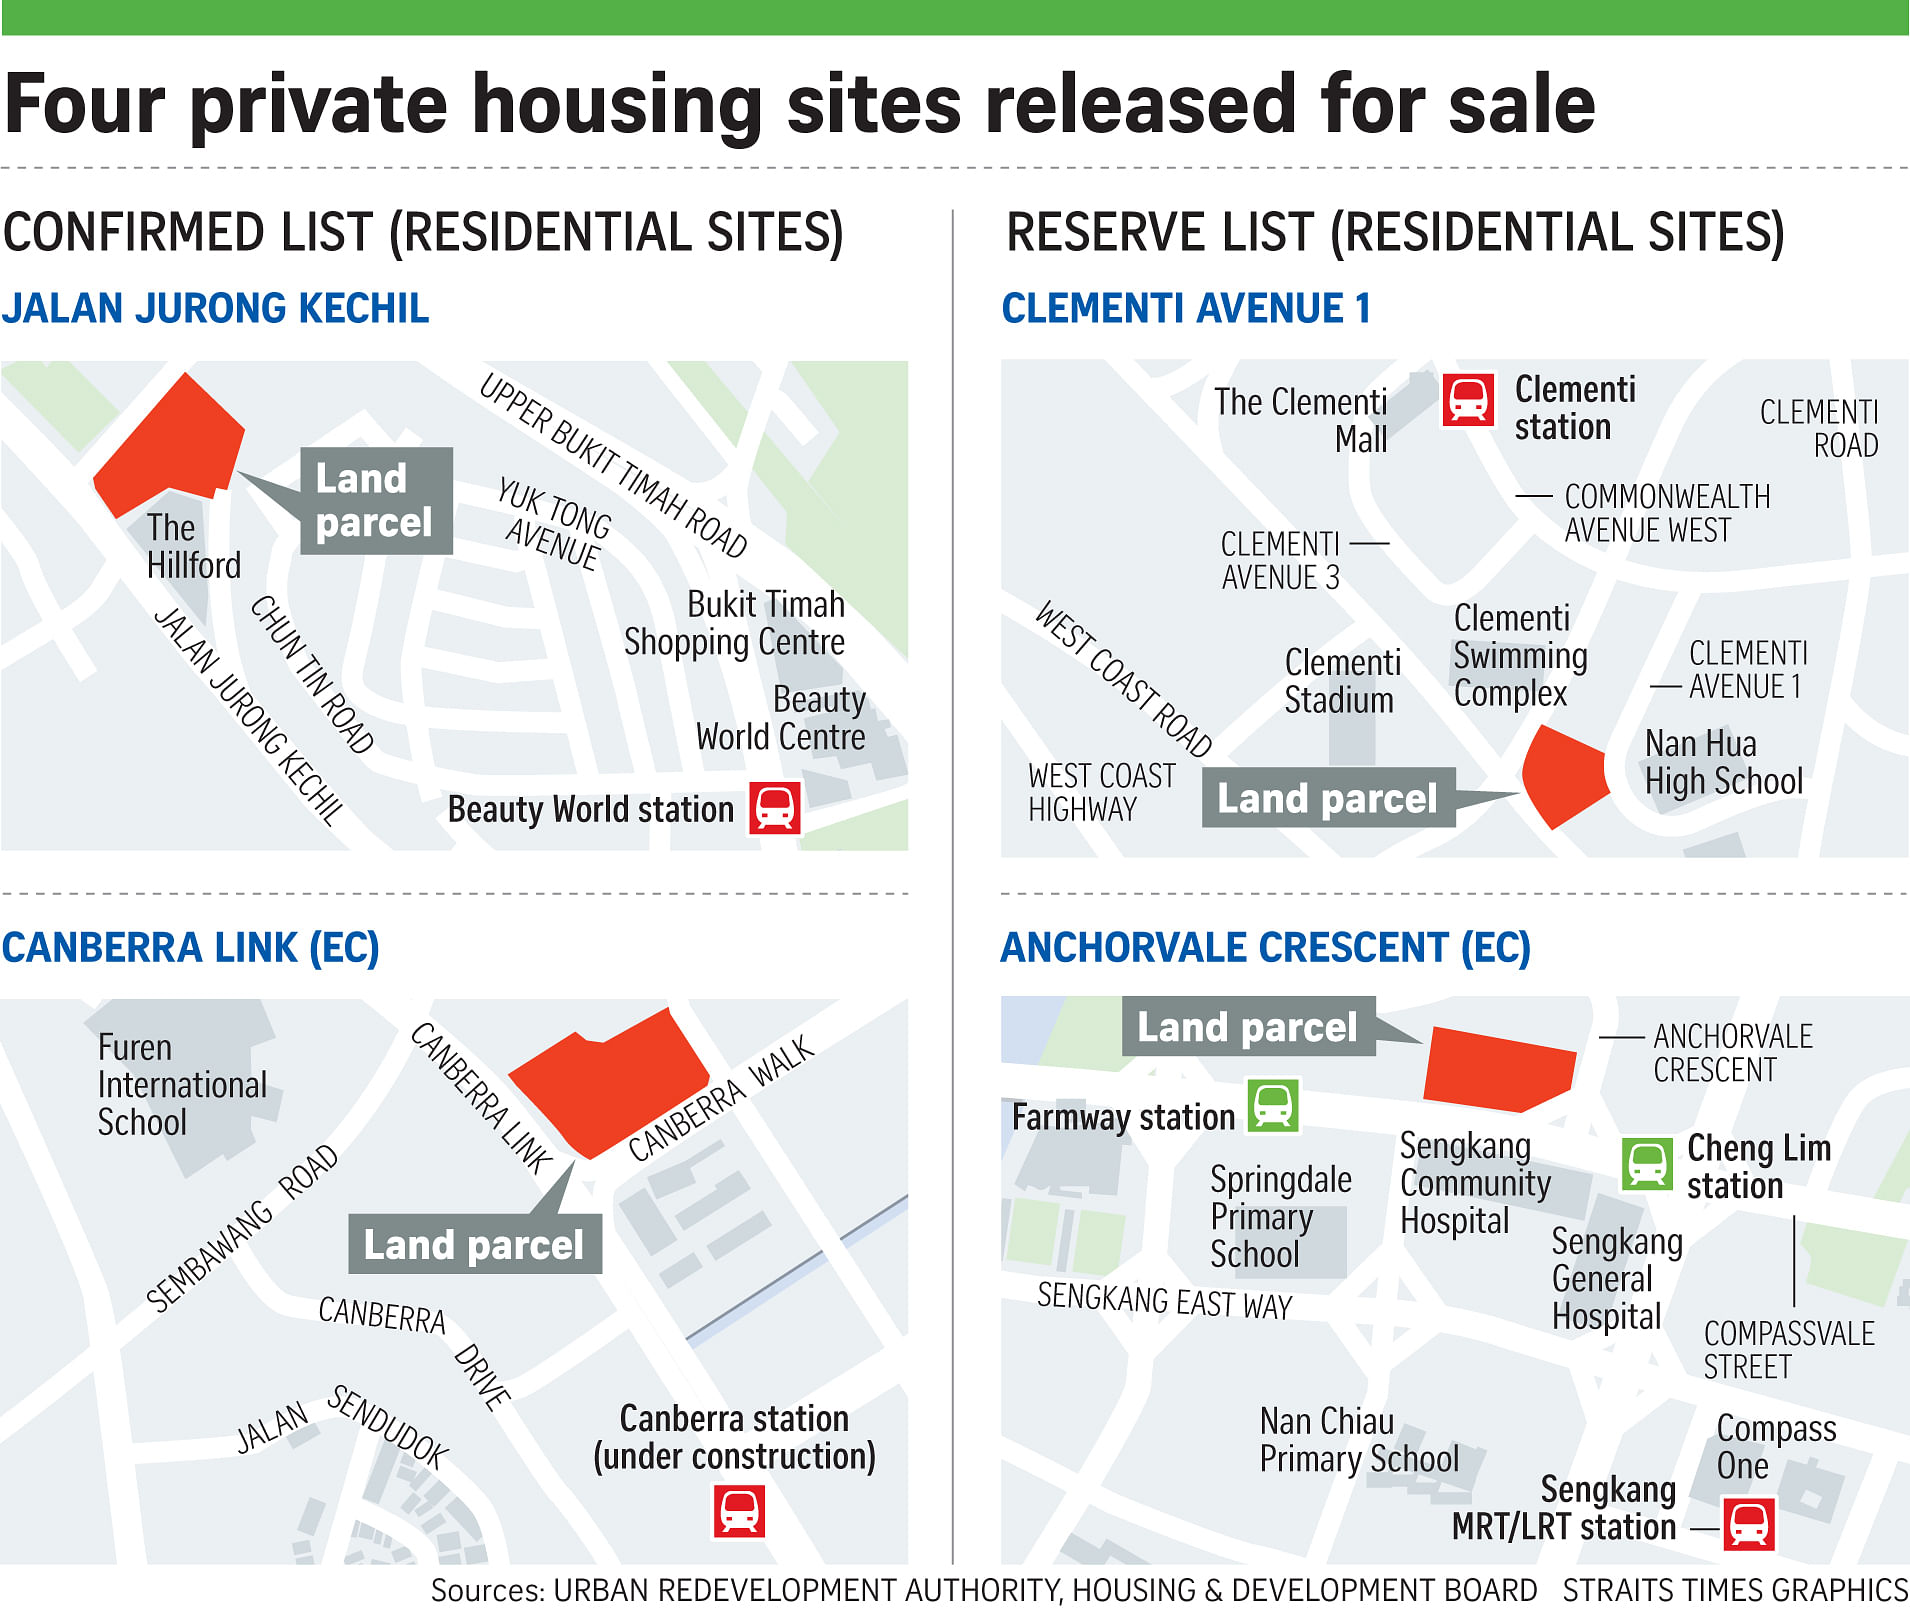 Canberra Link EC site likely to see hot bidding, Property News & Top